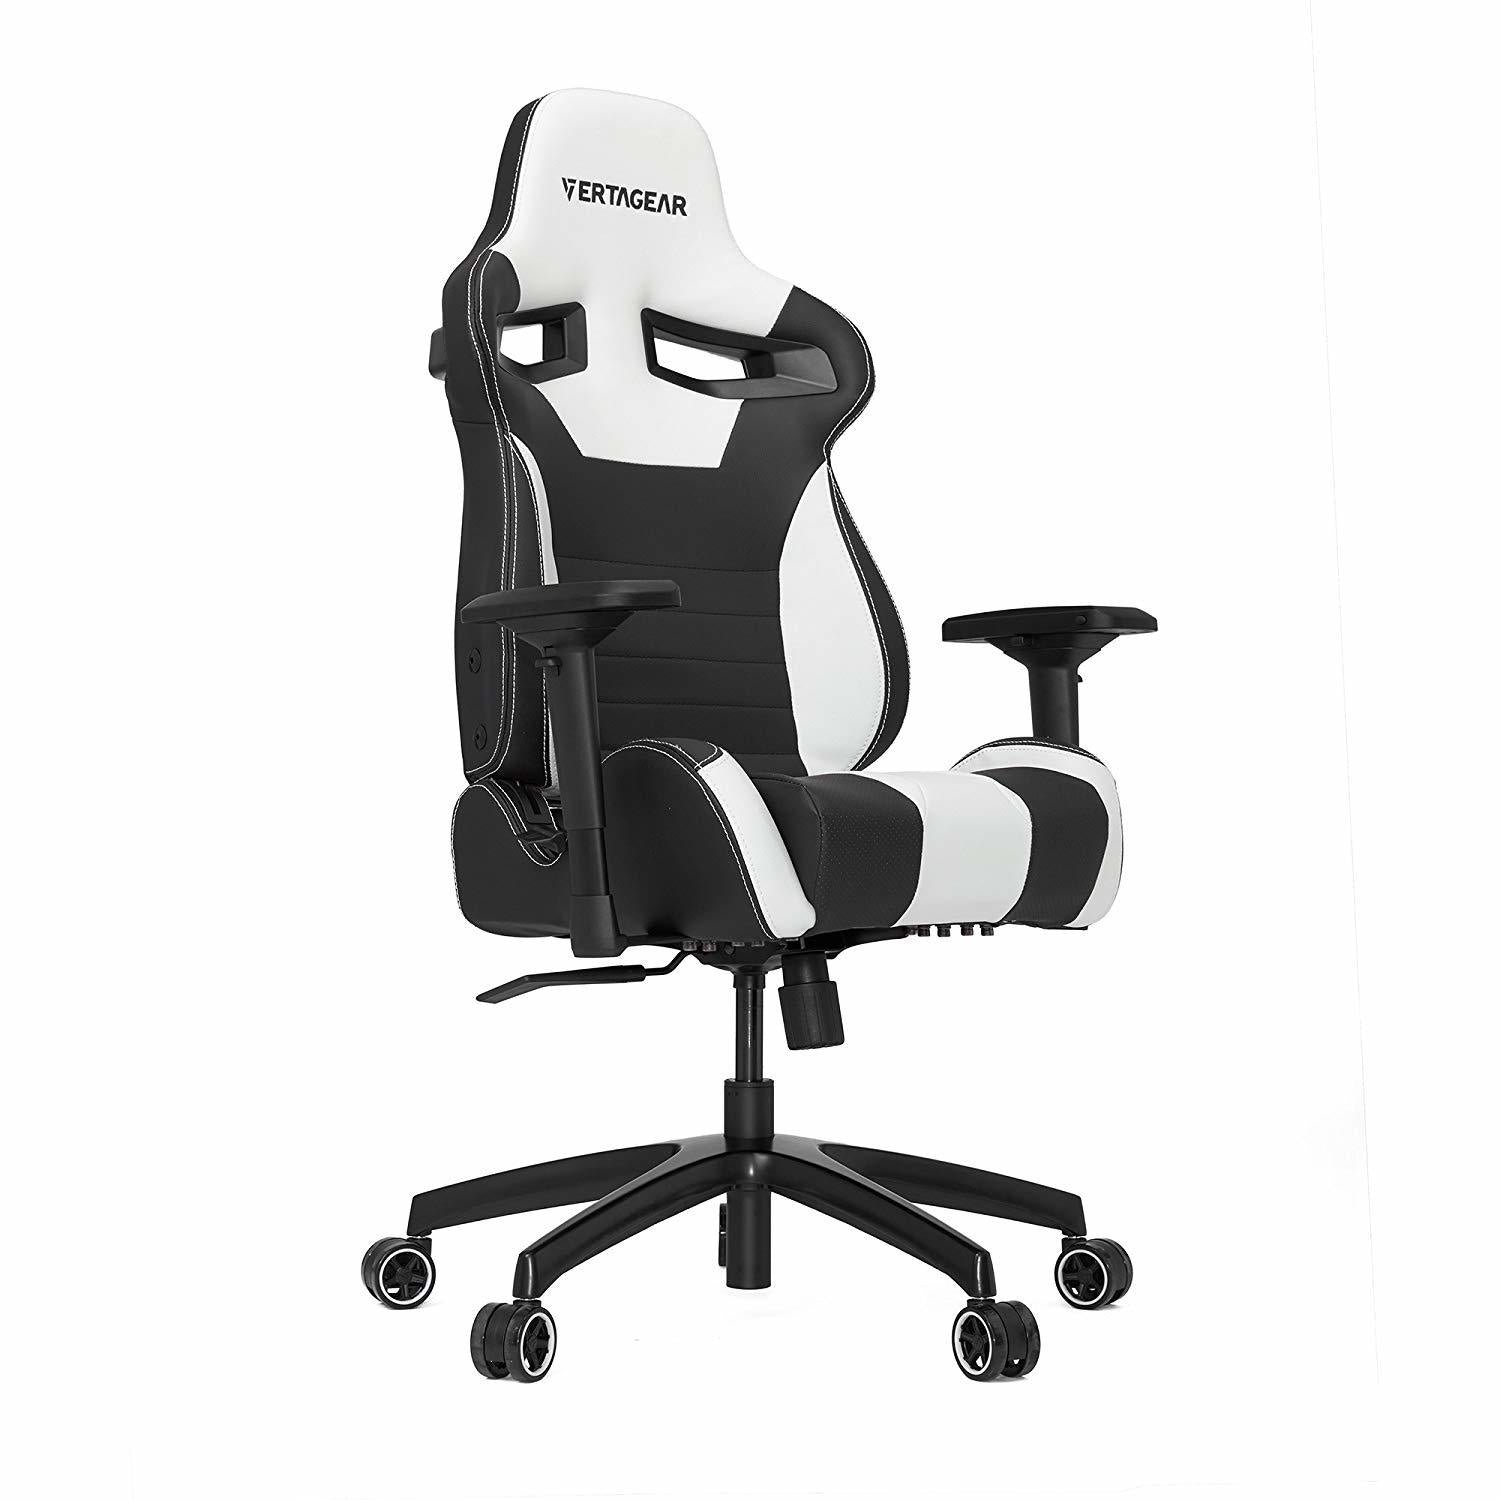 Vertagear Racing Series S-Line SL4000 Gaming Chair - Black/White